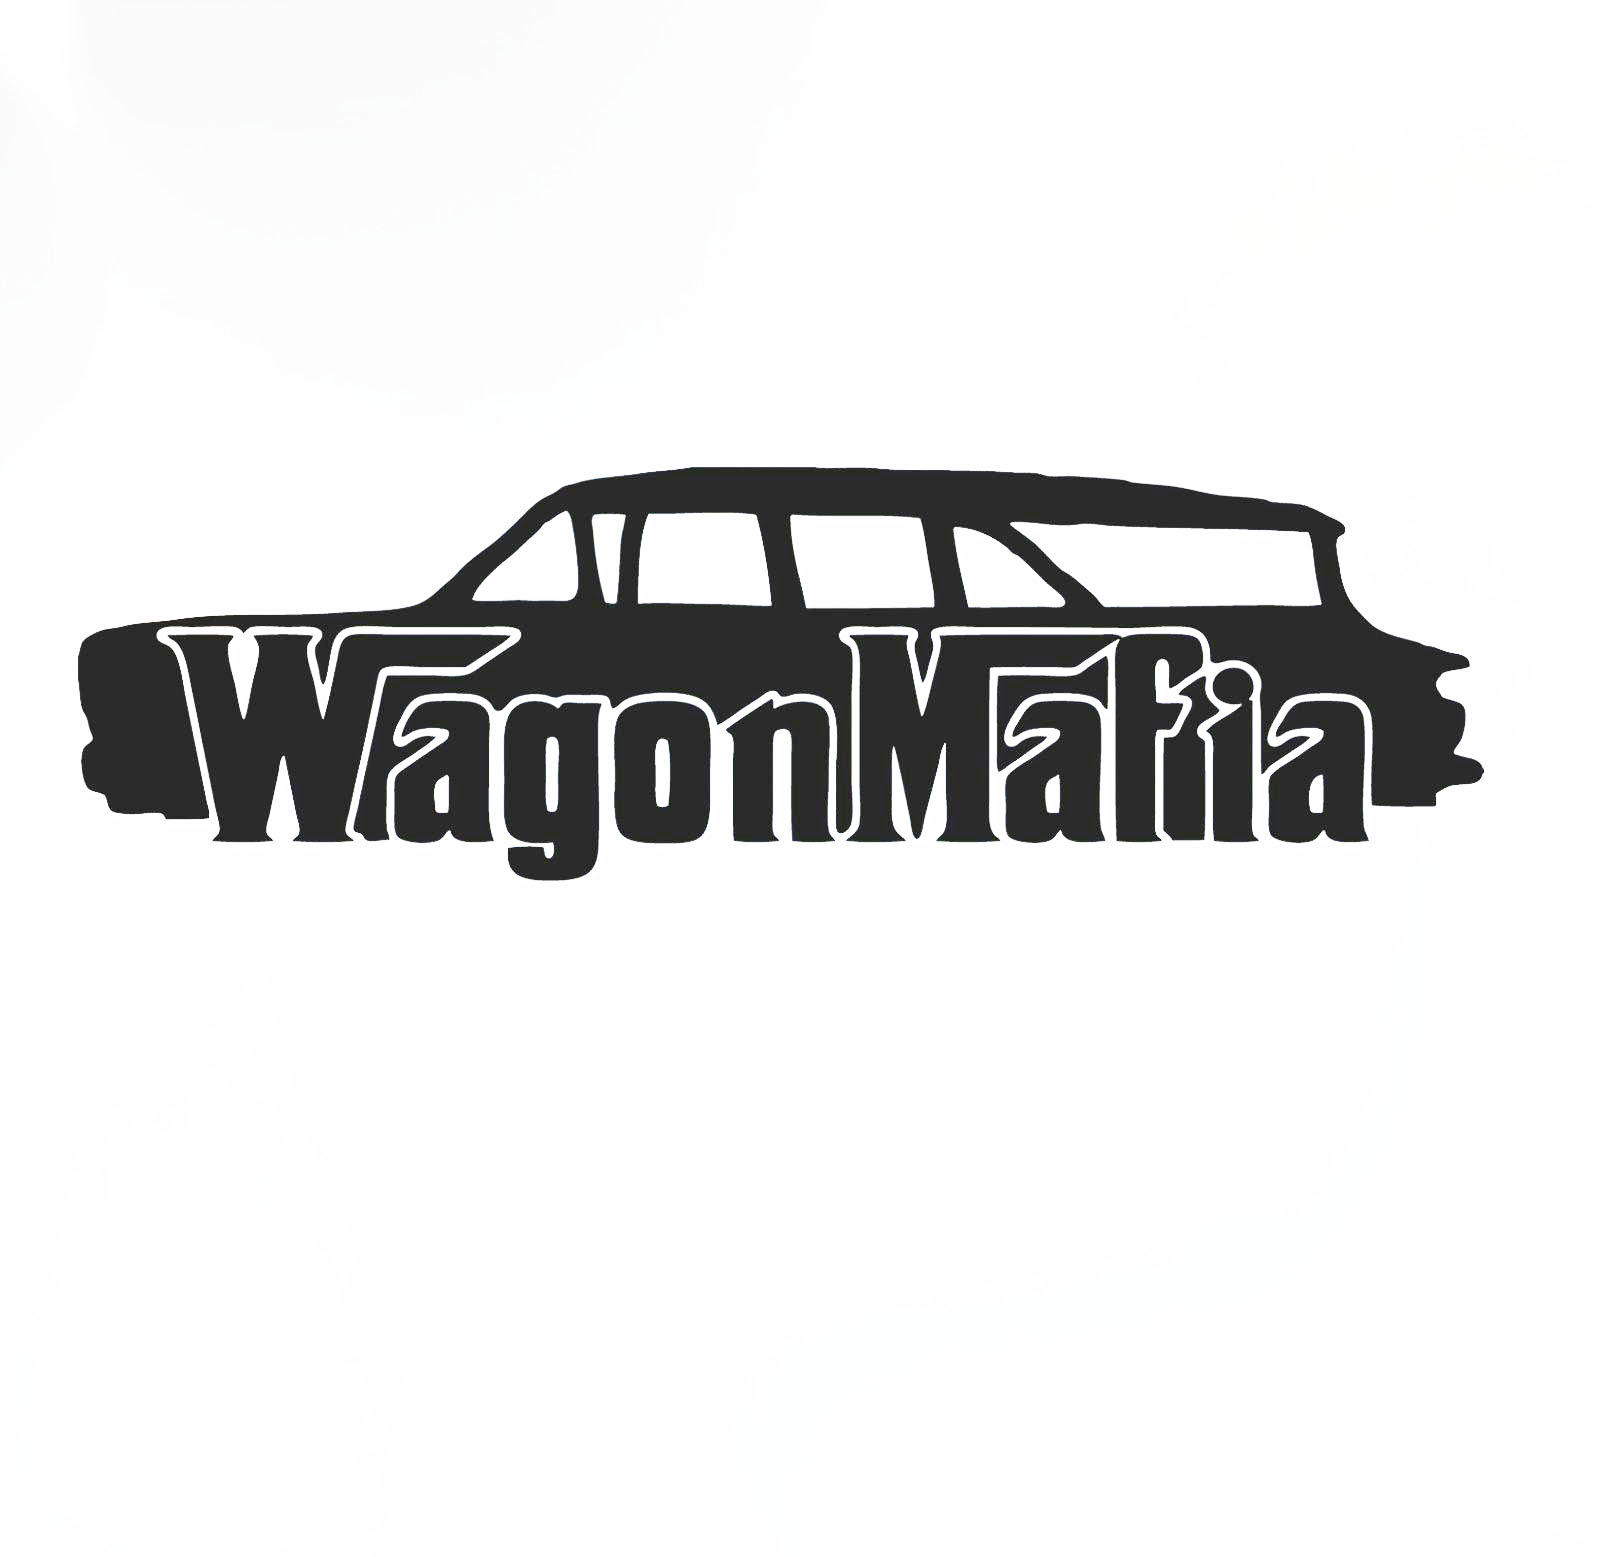 Hotmeini wagon mafia 960 chevy nomad lowered sticker low stance car window decal china